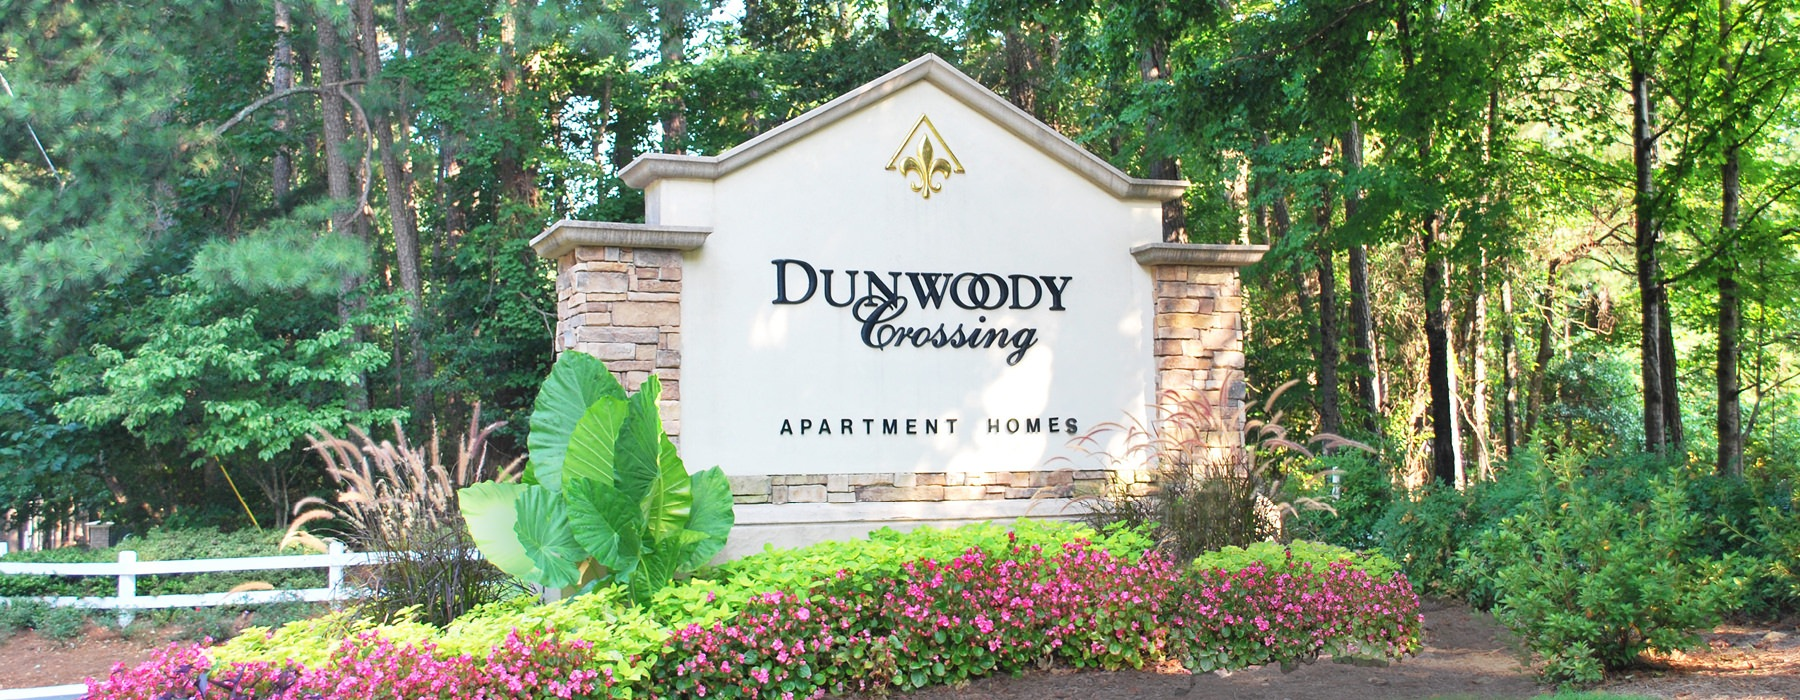 brick and concrete Dunwoody Crossing signage in well landscaped foliage